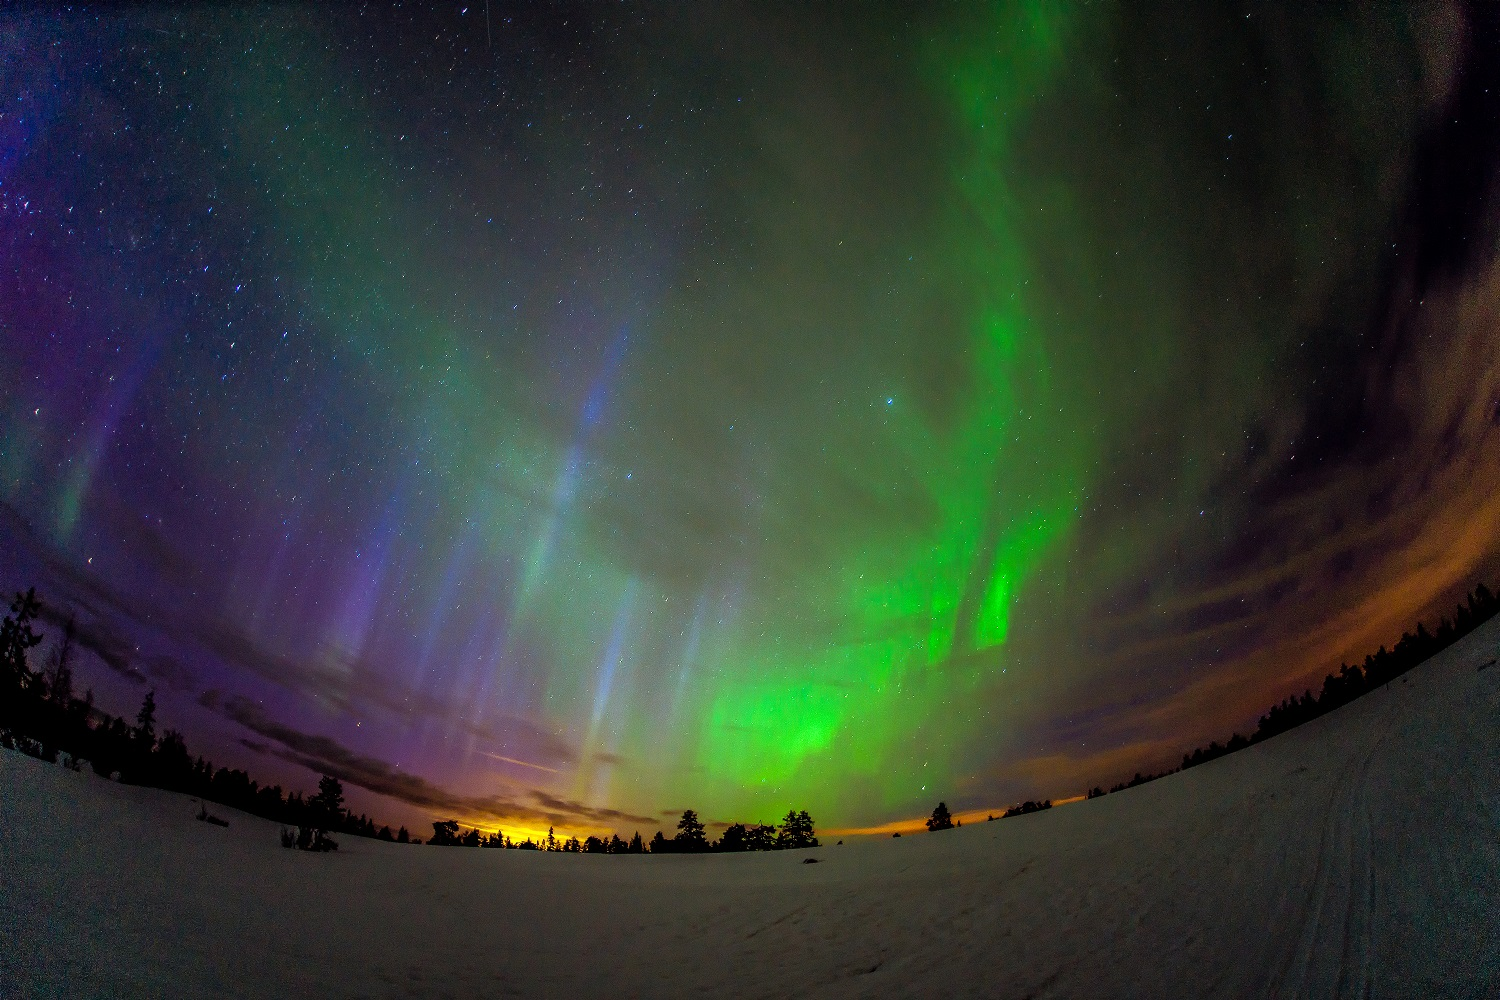 colorful sky with northern lights